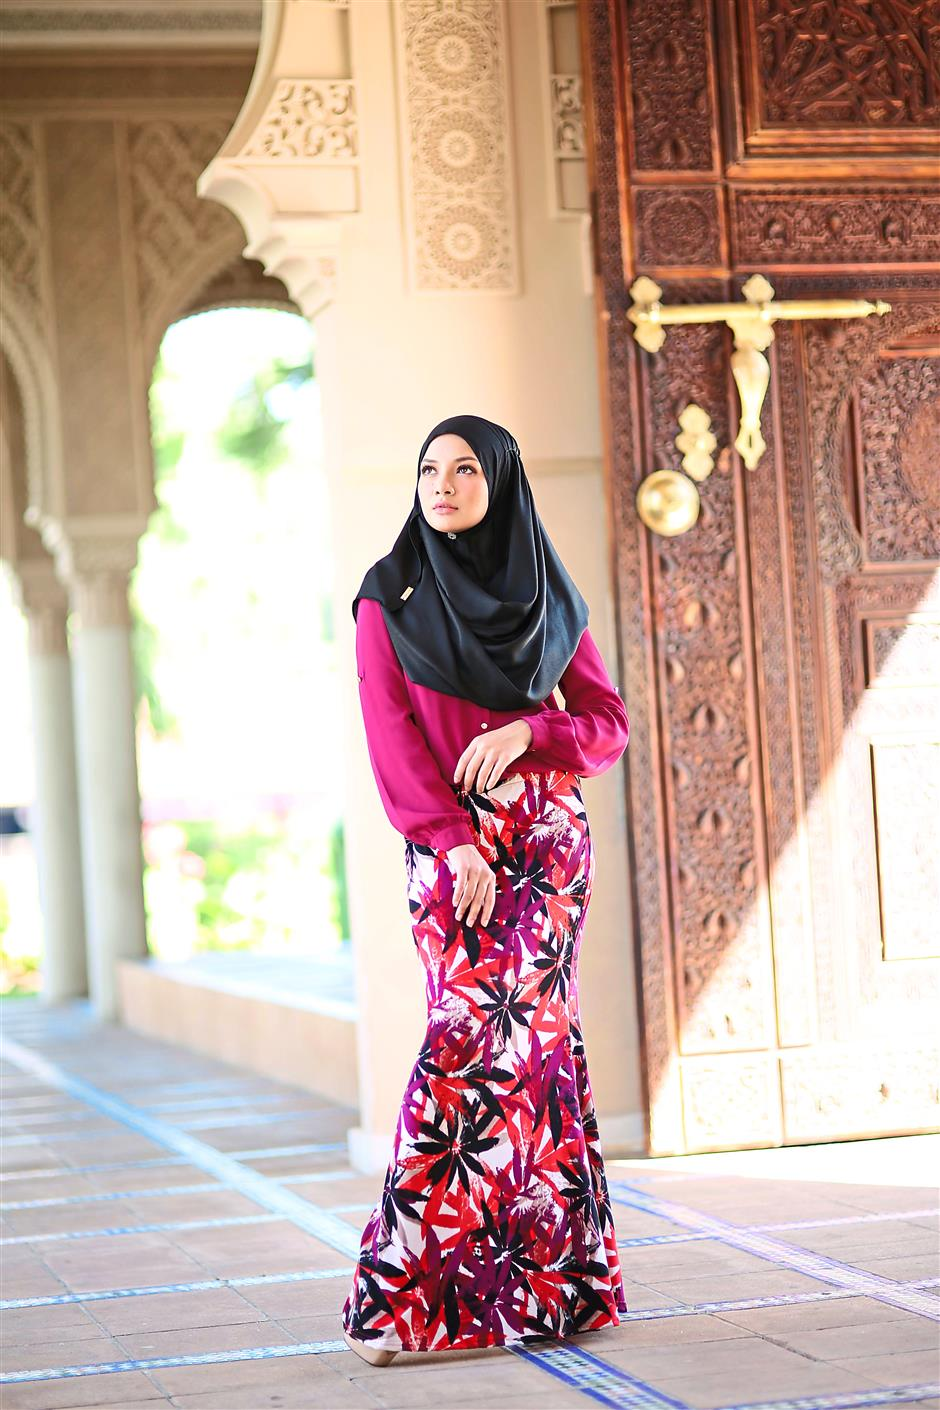 Rising entrepreneur: Neelofa is always thinking of ways to increase the sales of her hijab collection.